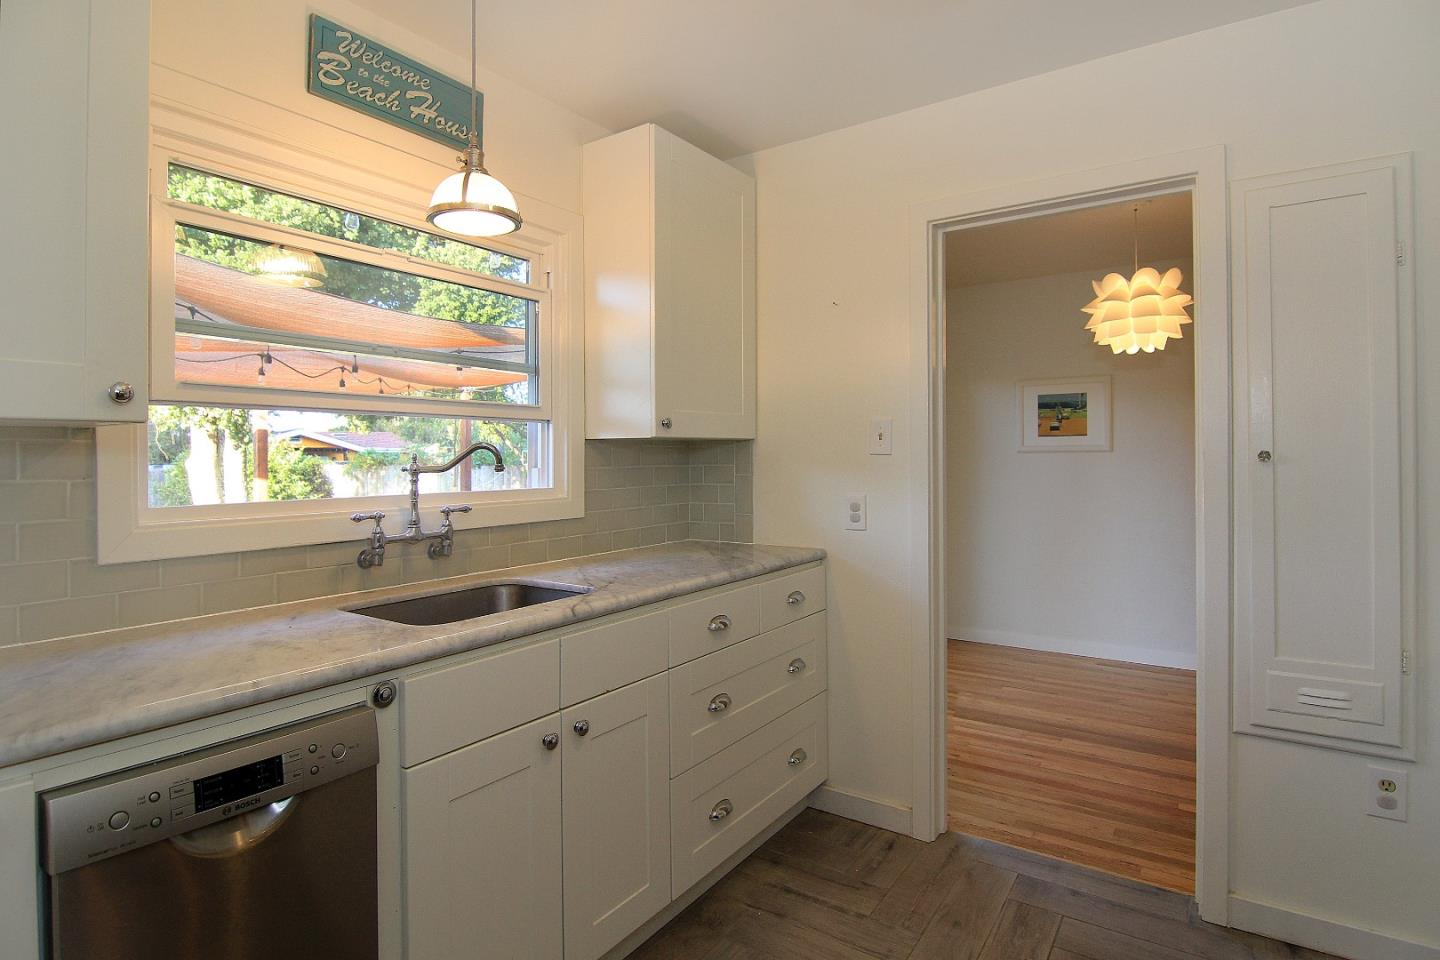 Additional photo for property listing at 1024 Bay Street  Santa Cruz, California 95060 United States